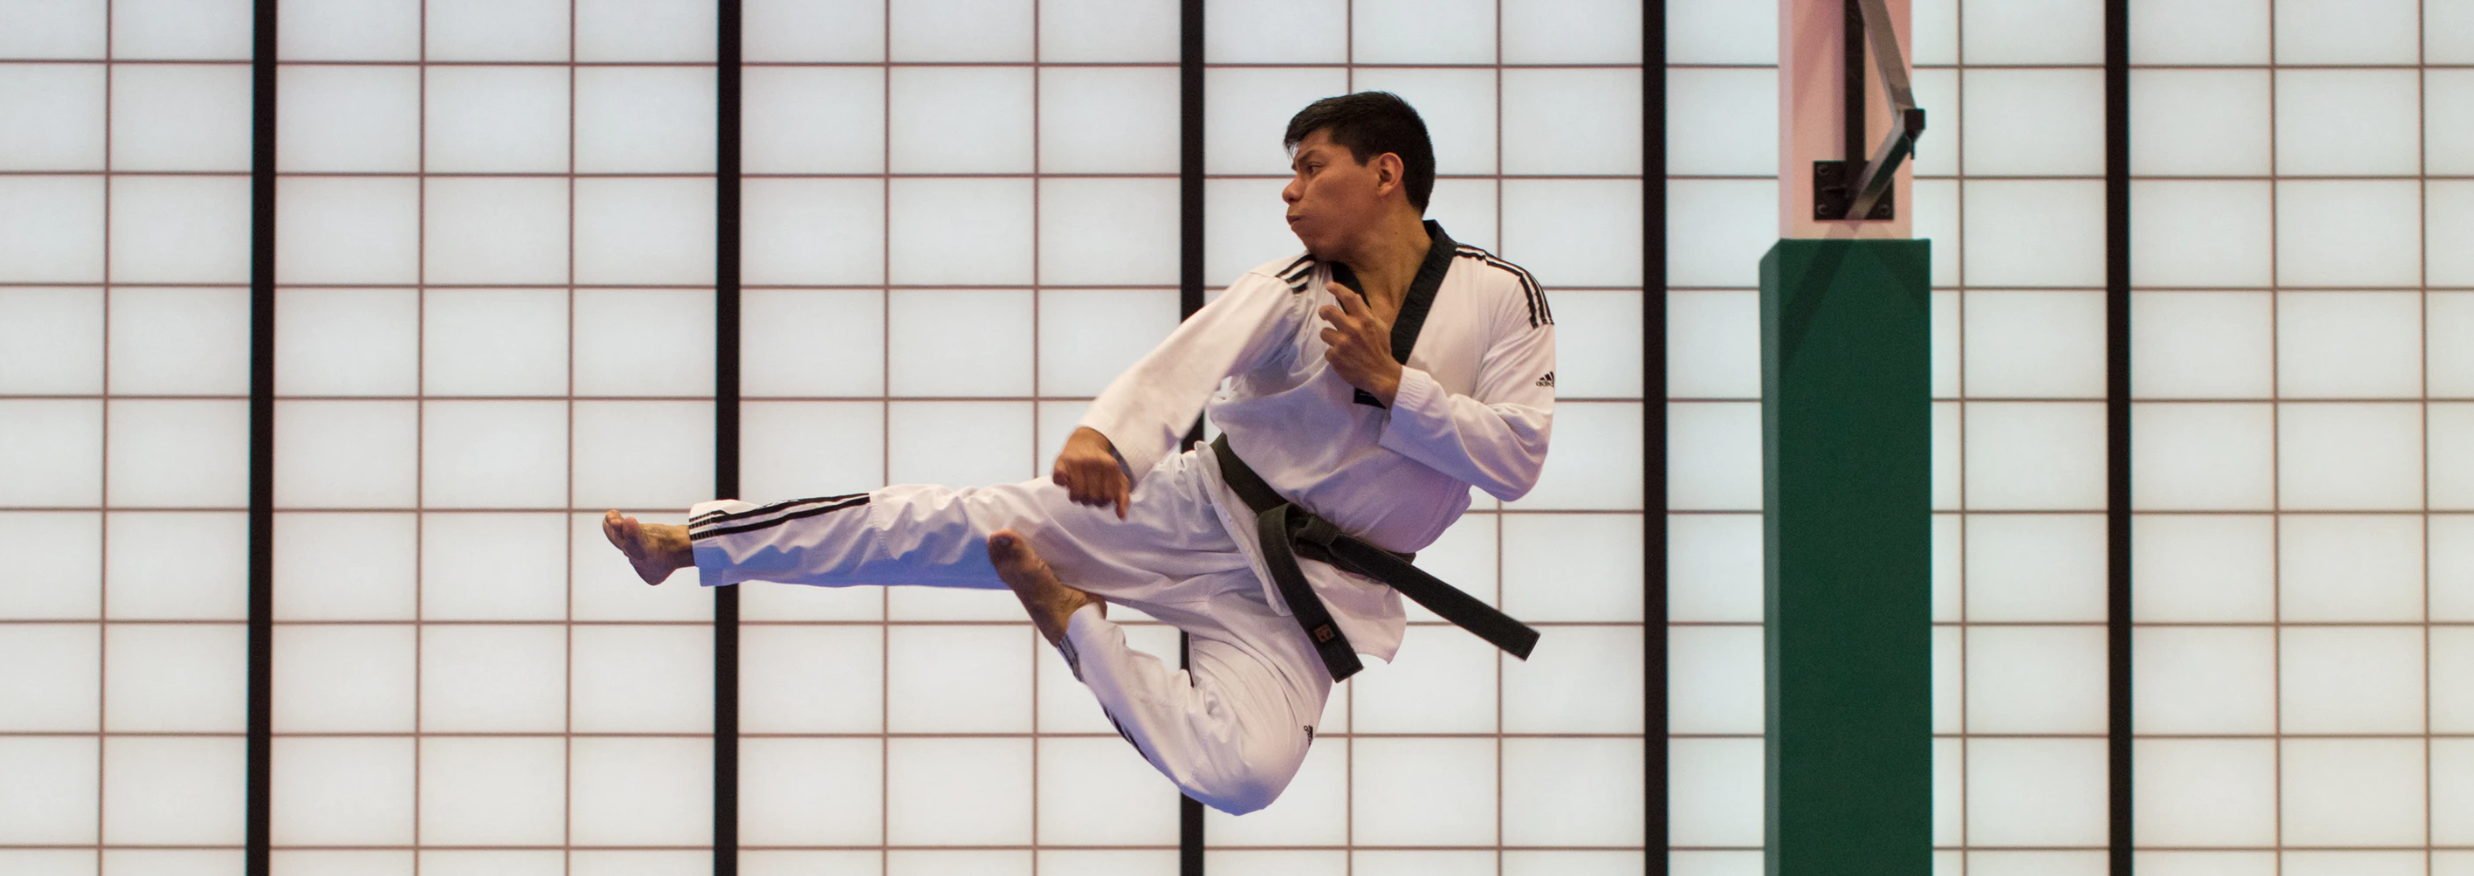 Taekwondo specialist throwing the side kick